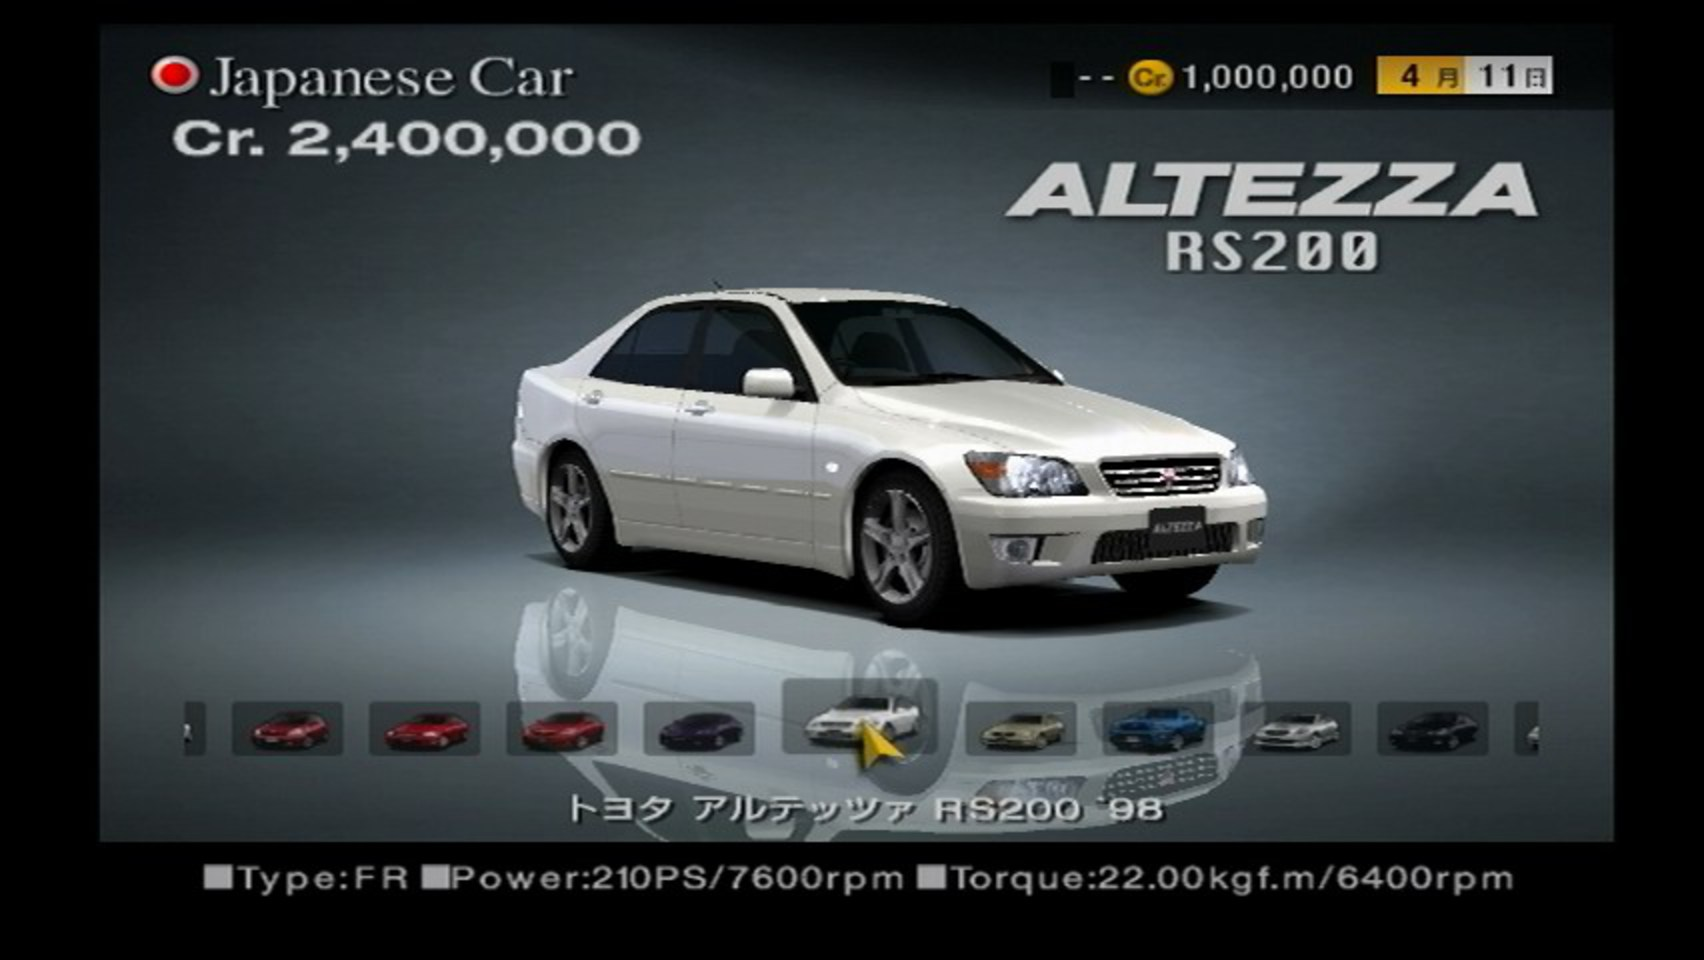 Toyota Altezza RS200 Author: rozz. Date: 25.11.2012. Views: 38586